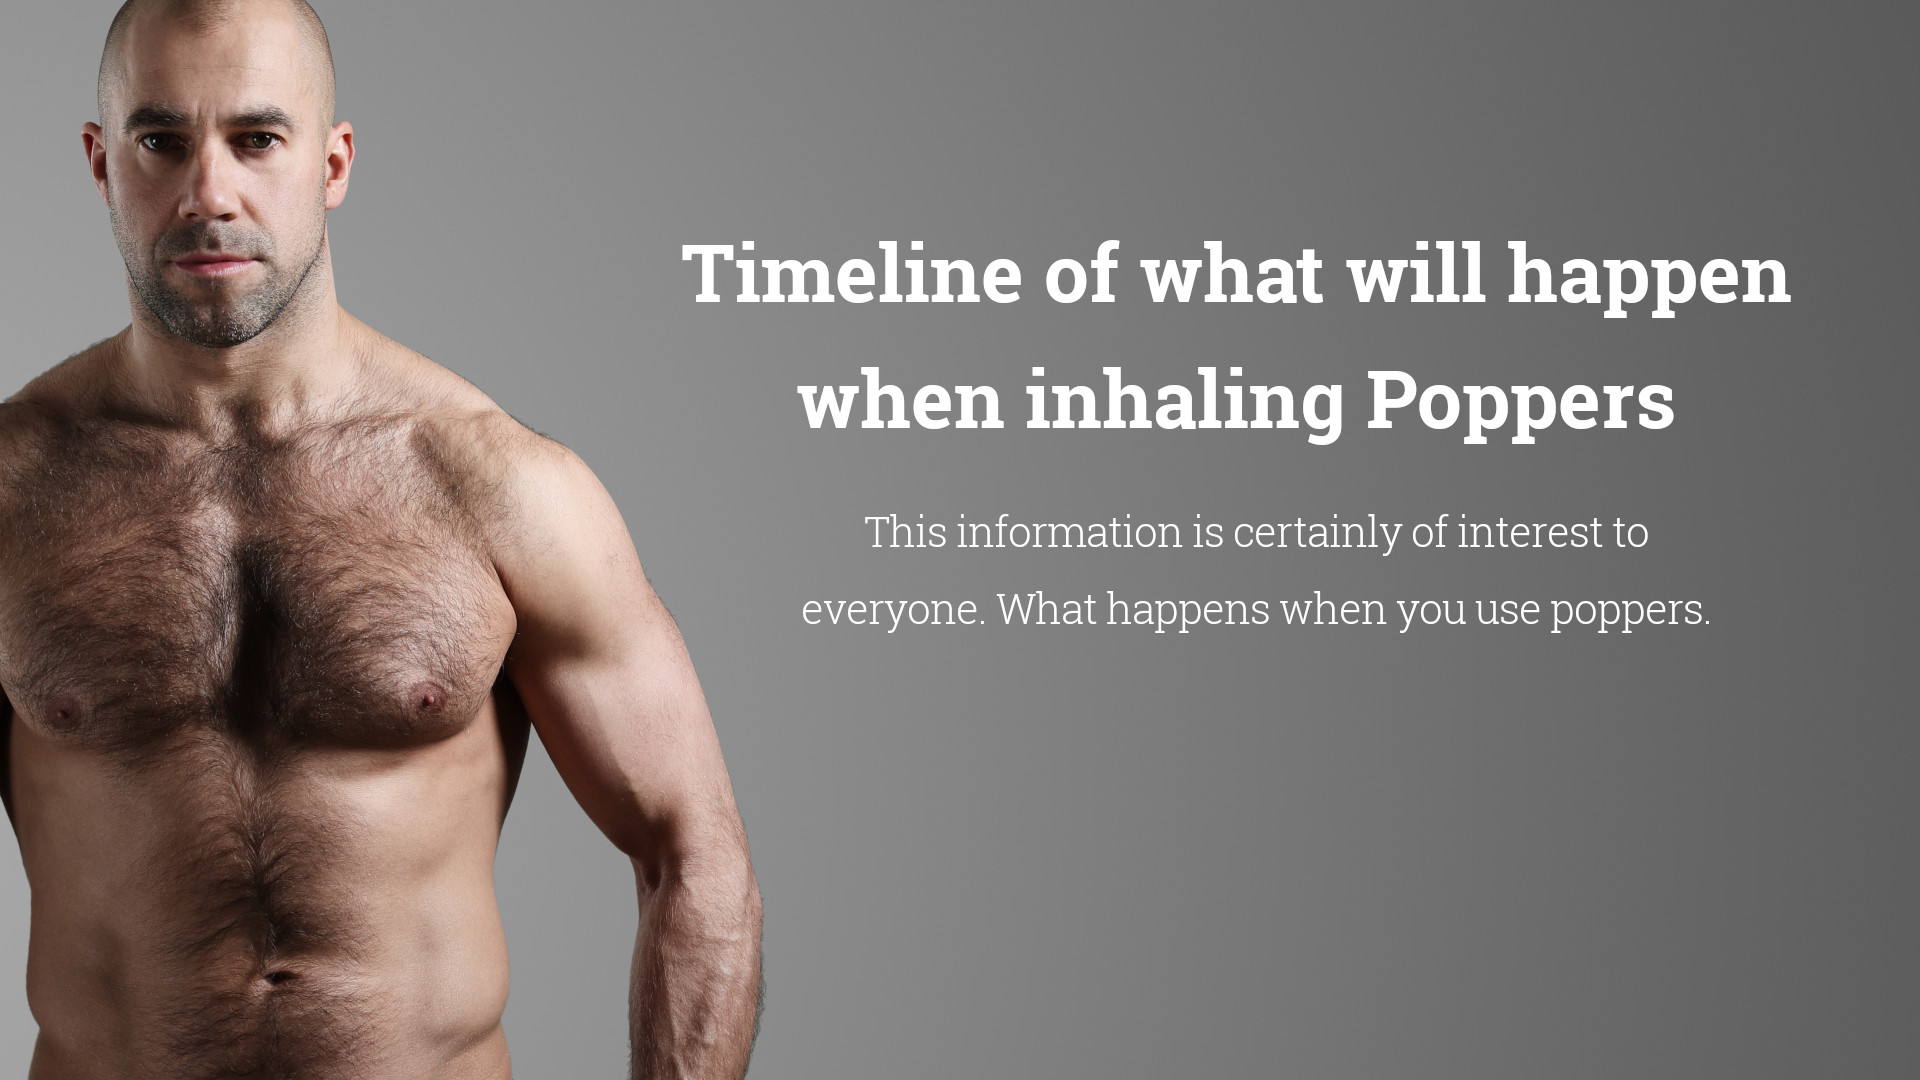 Timeline of what will happen when inhaling Poppers